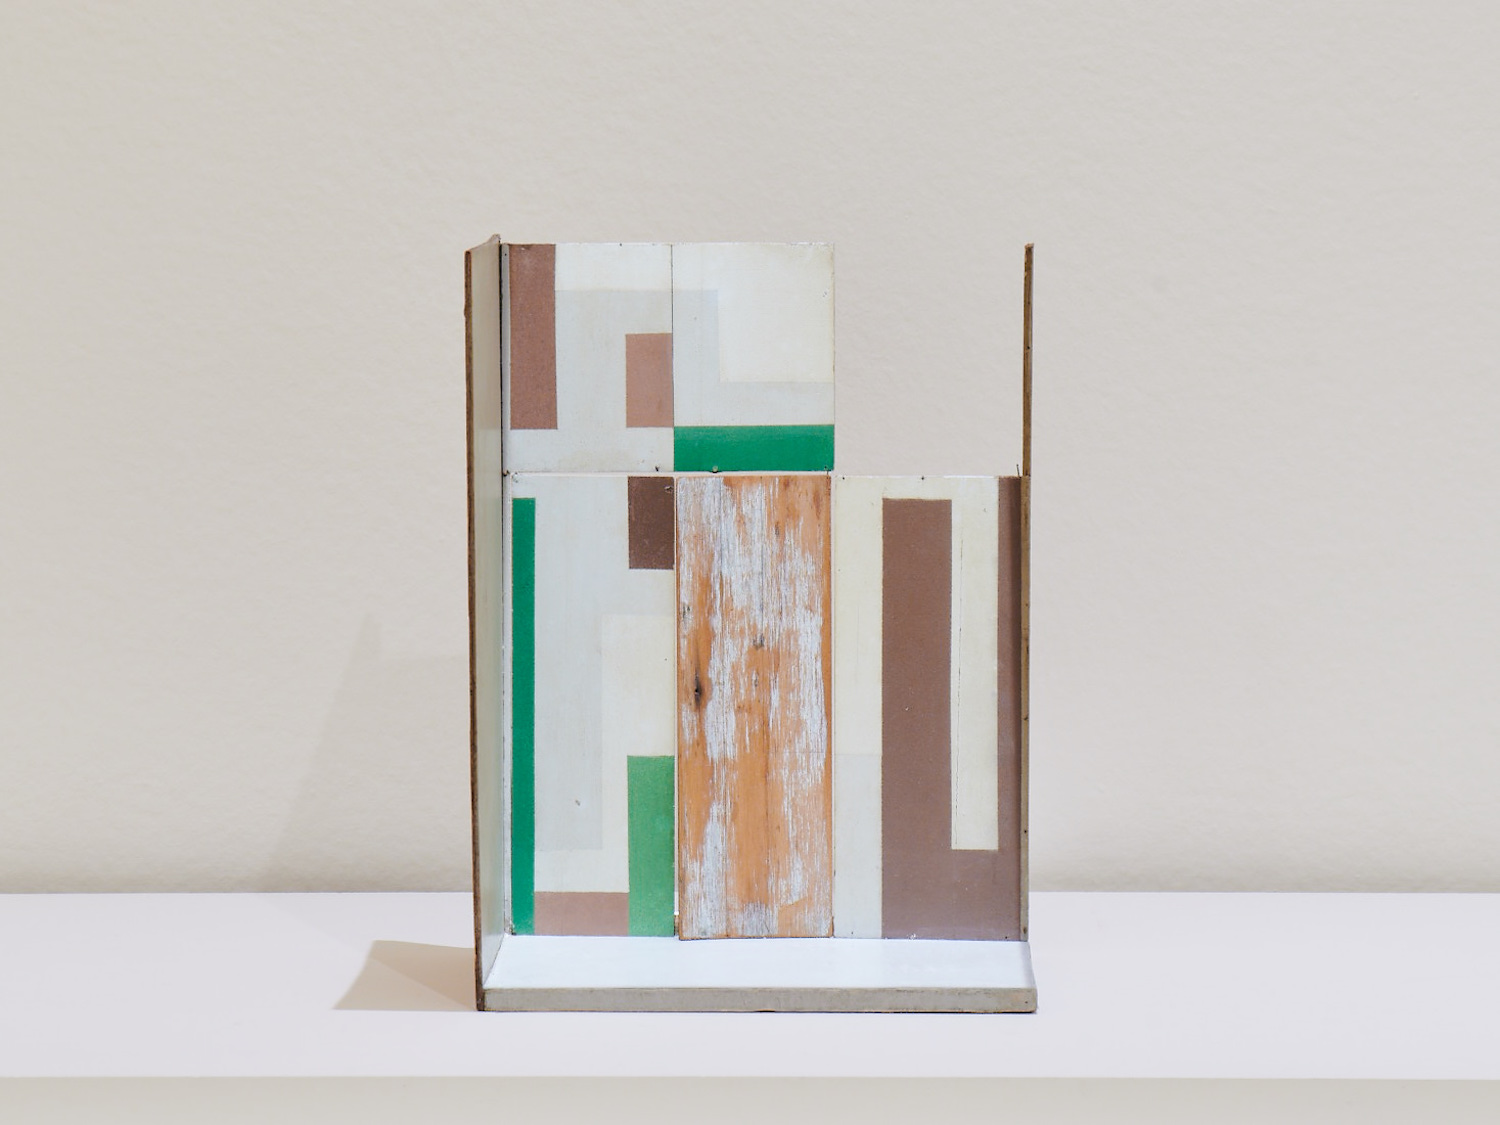 Maquette for Interior No.2, 1955. Private collection. Courtesy Alison Jacques Gallery, London